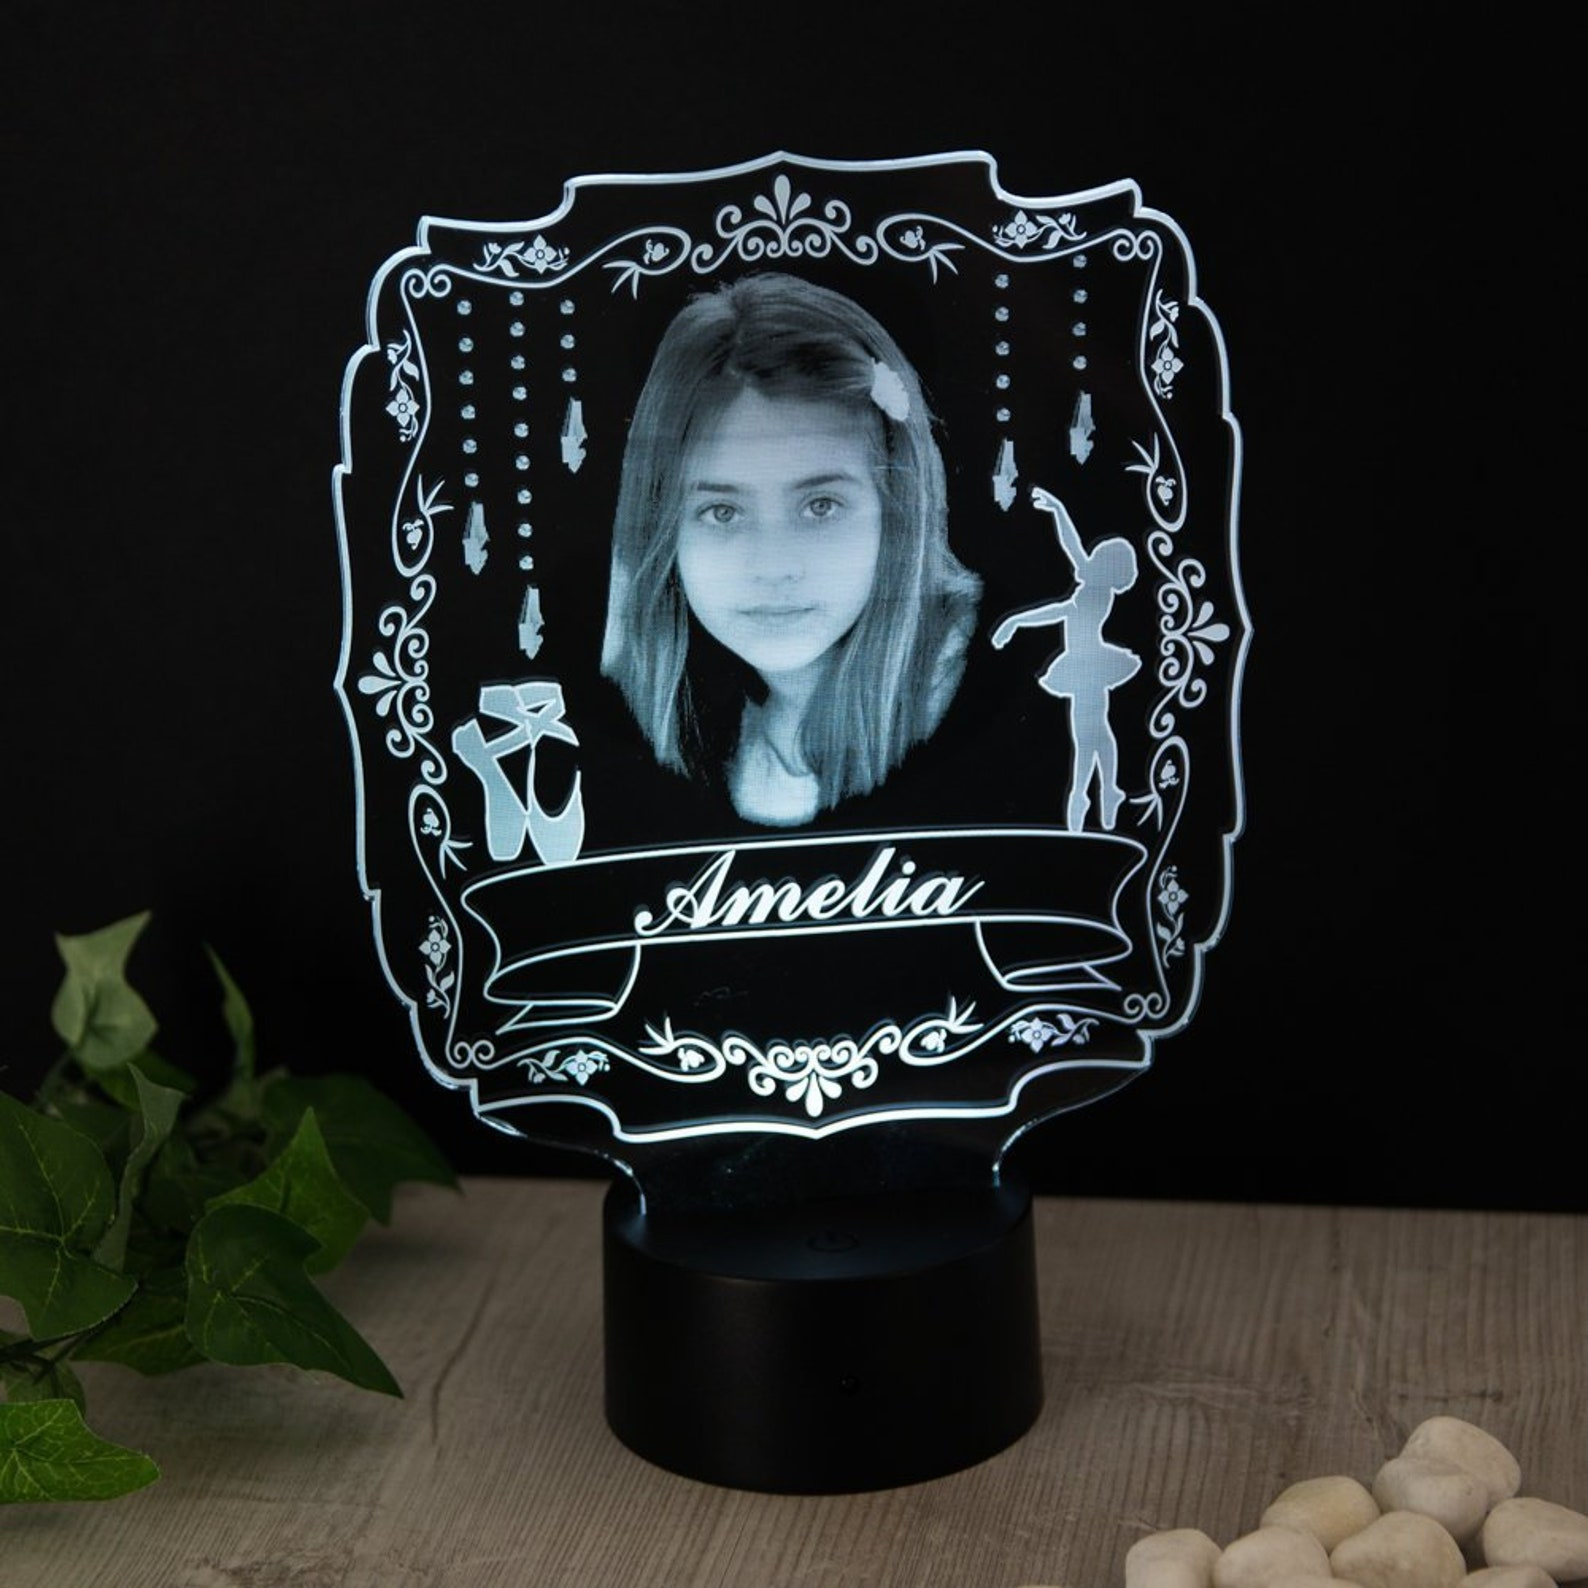 ballerina gift for her personalised with photo name night light 16 colours ballet shoes dance silhouette